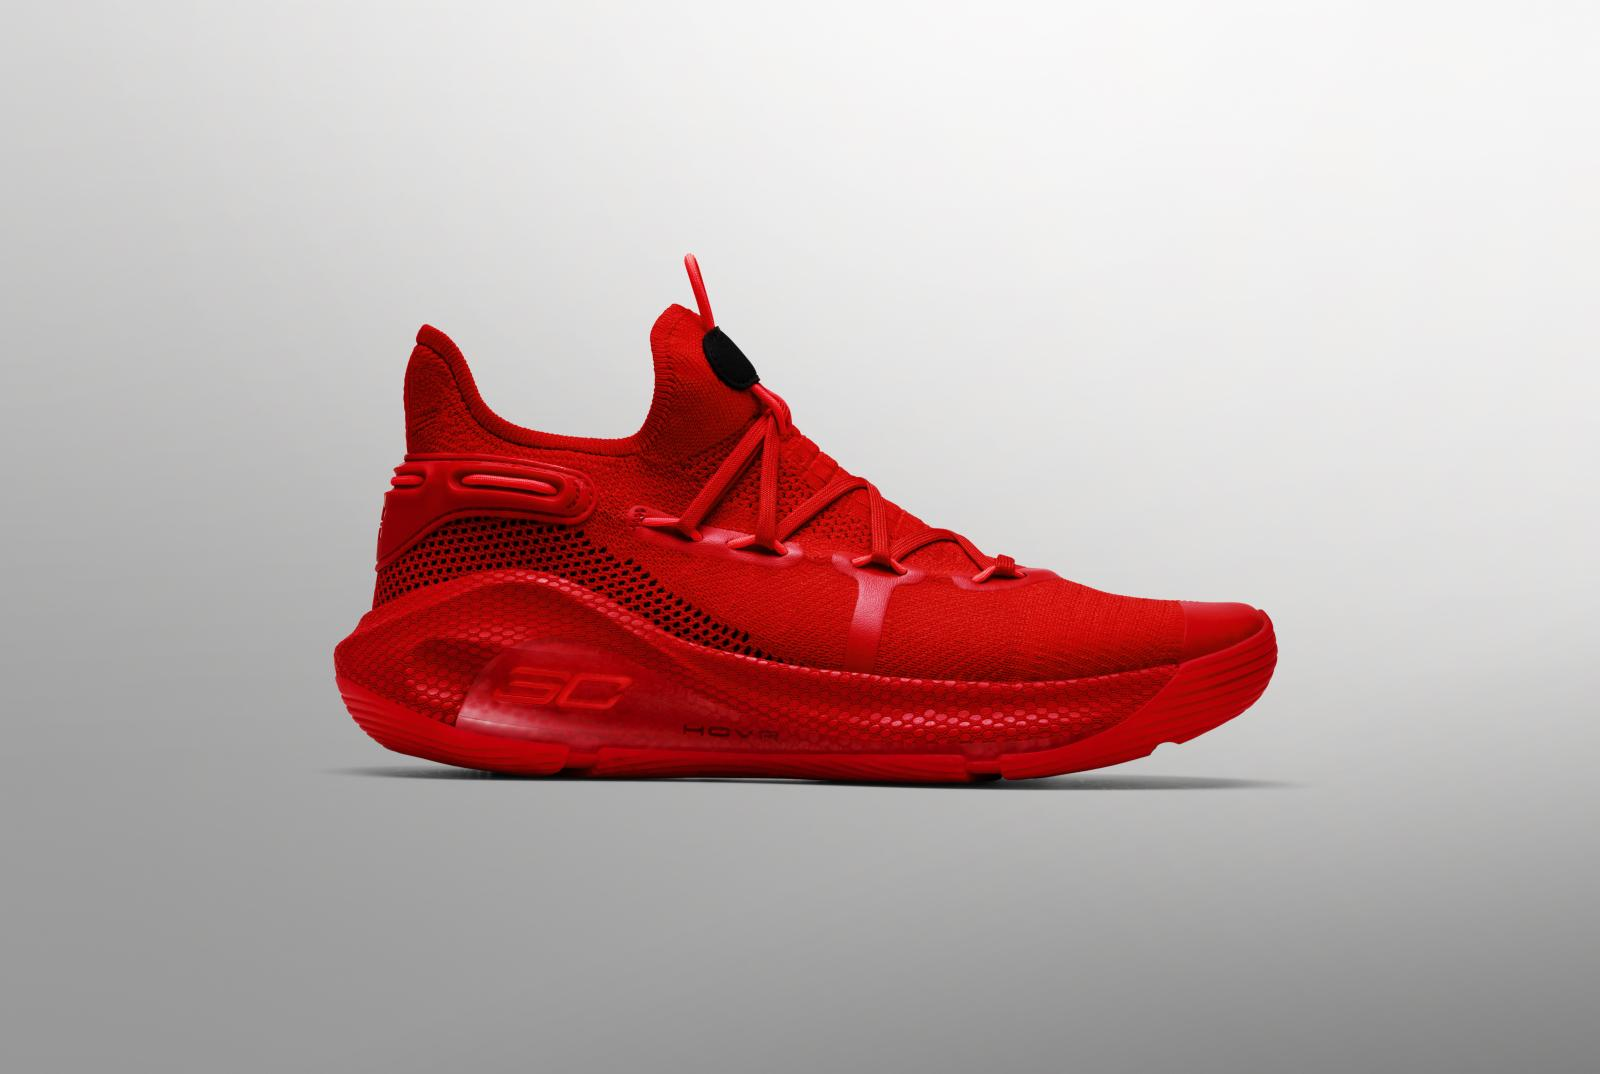 ef691be1d8a Introducing the Curry 6 Heart of the Town colorway